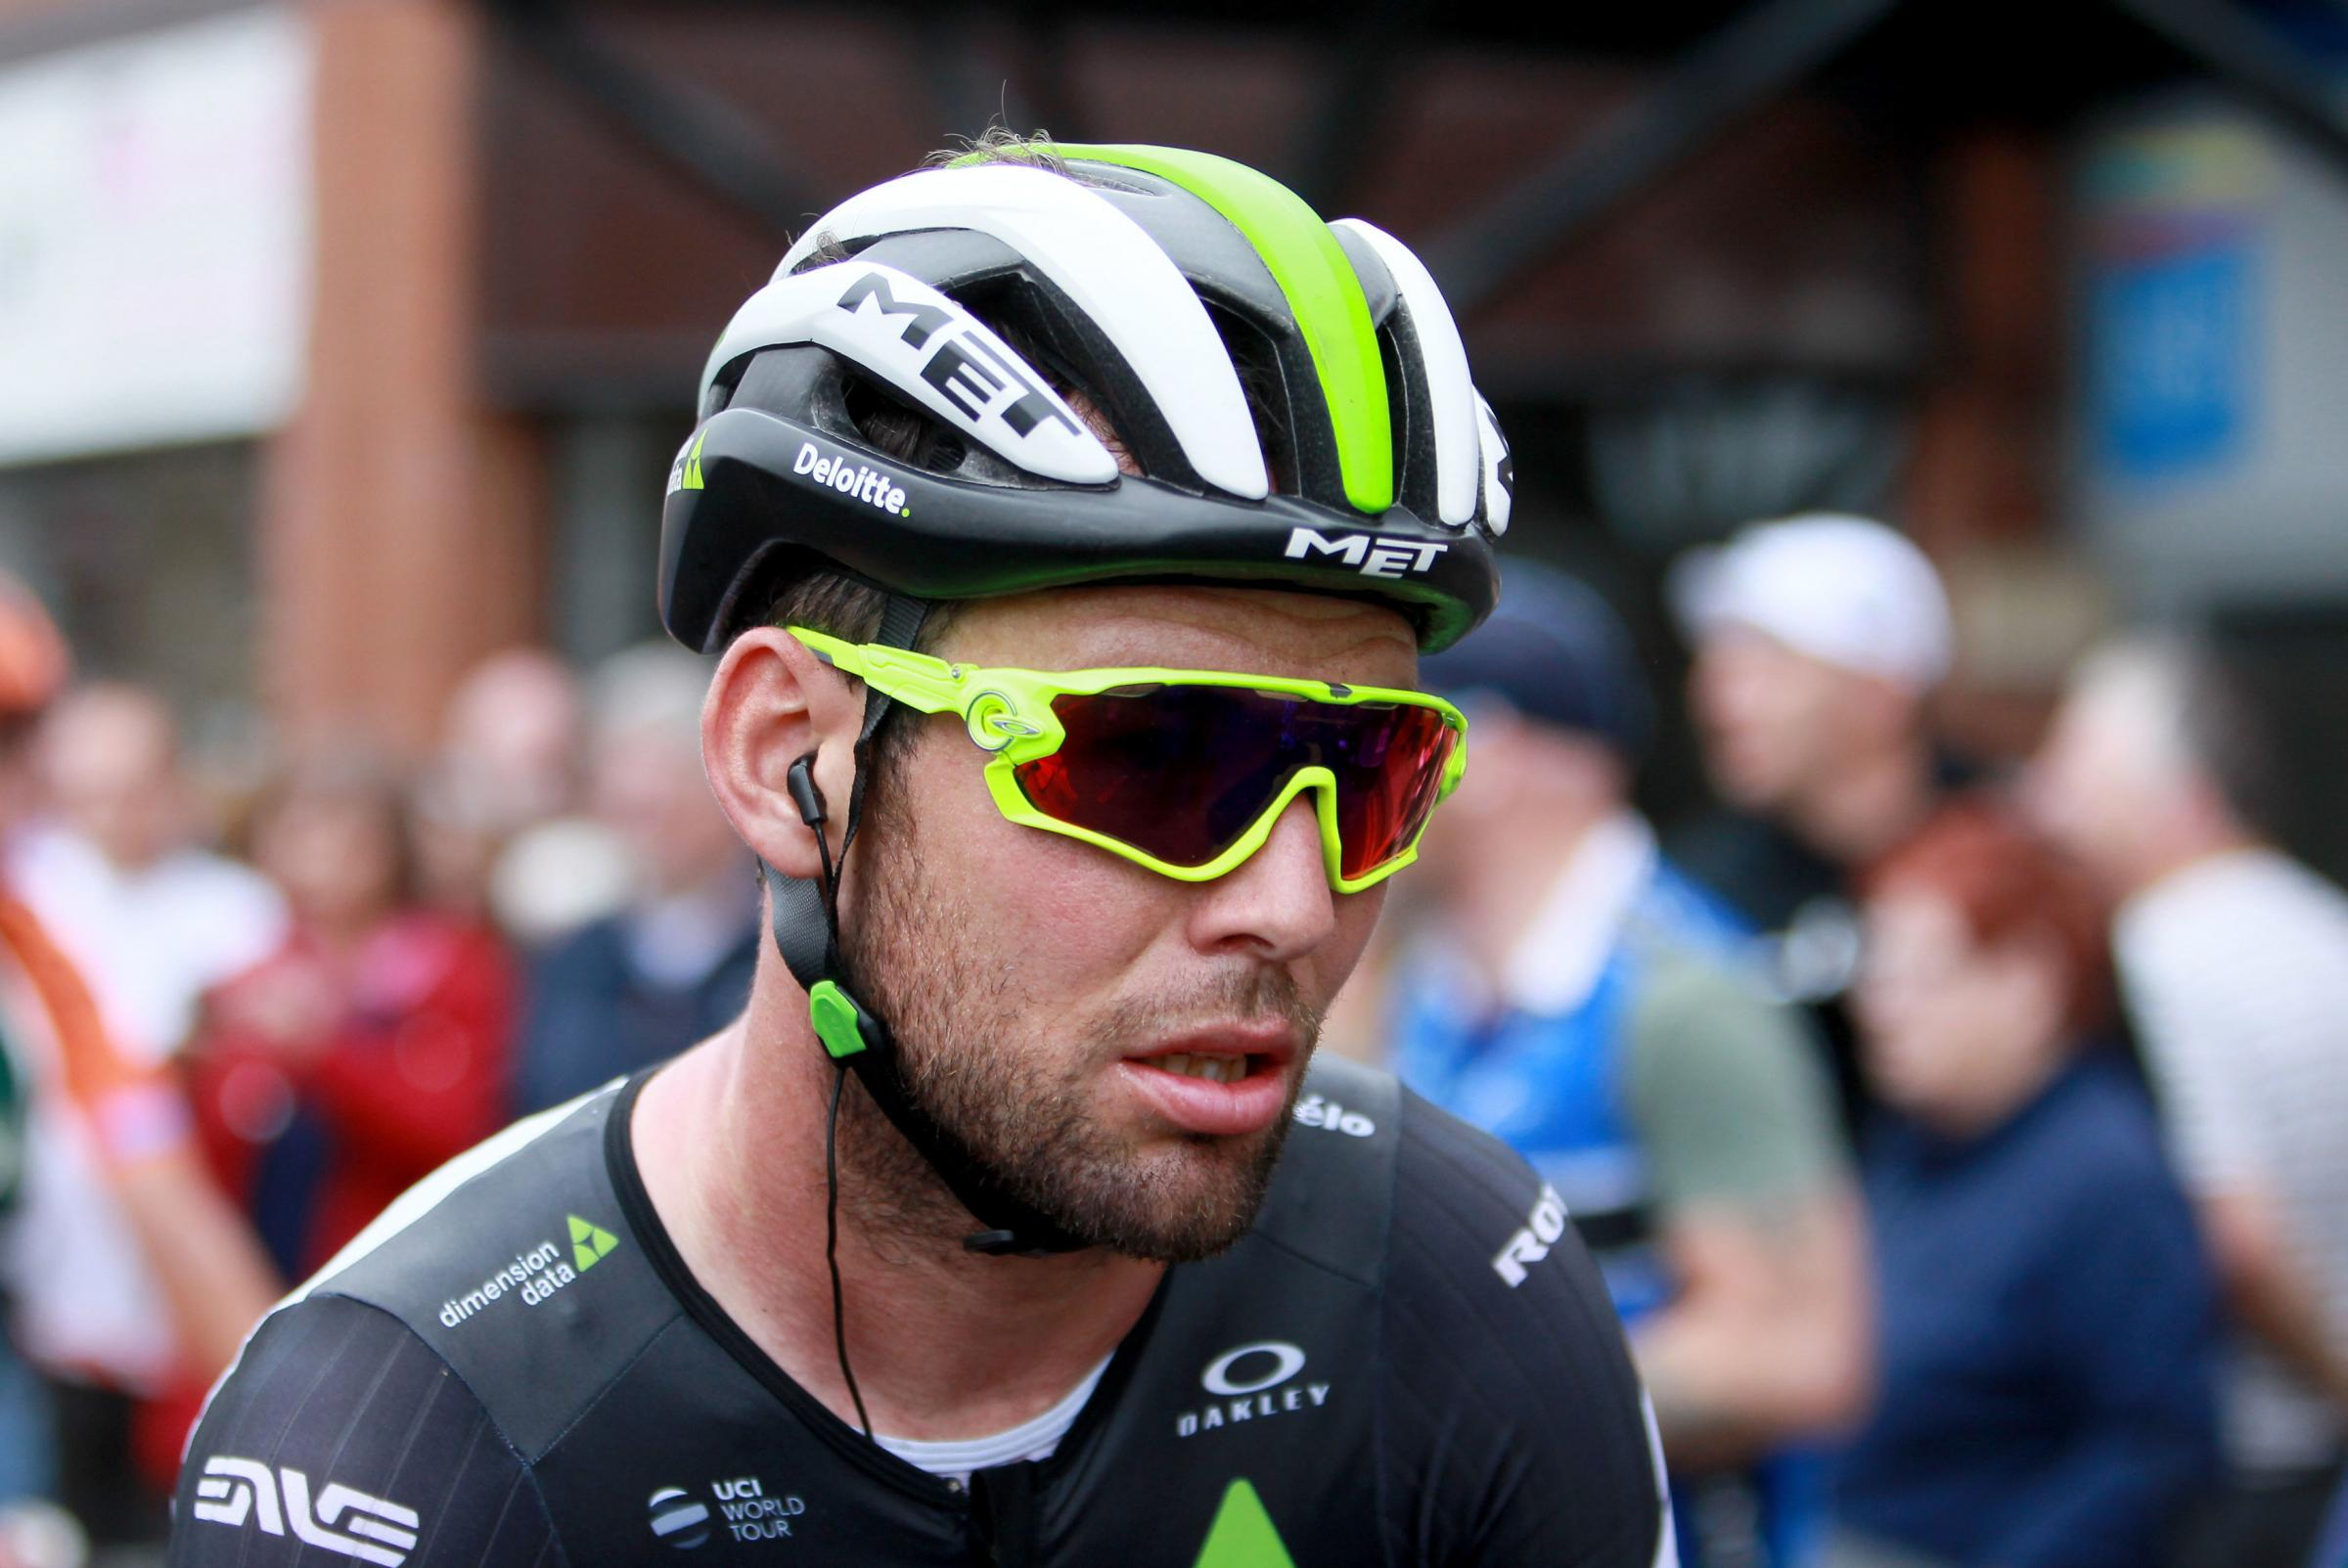 Cavendish Looking For Form Ahead Of Latest Tour De France Bid The